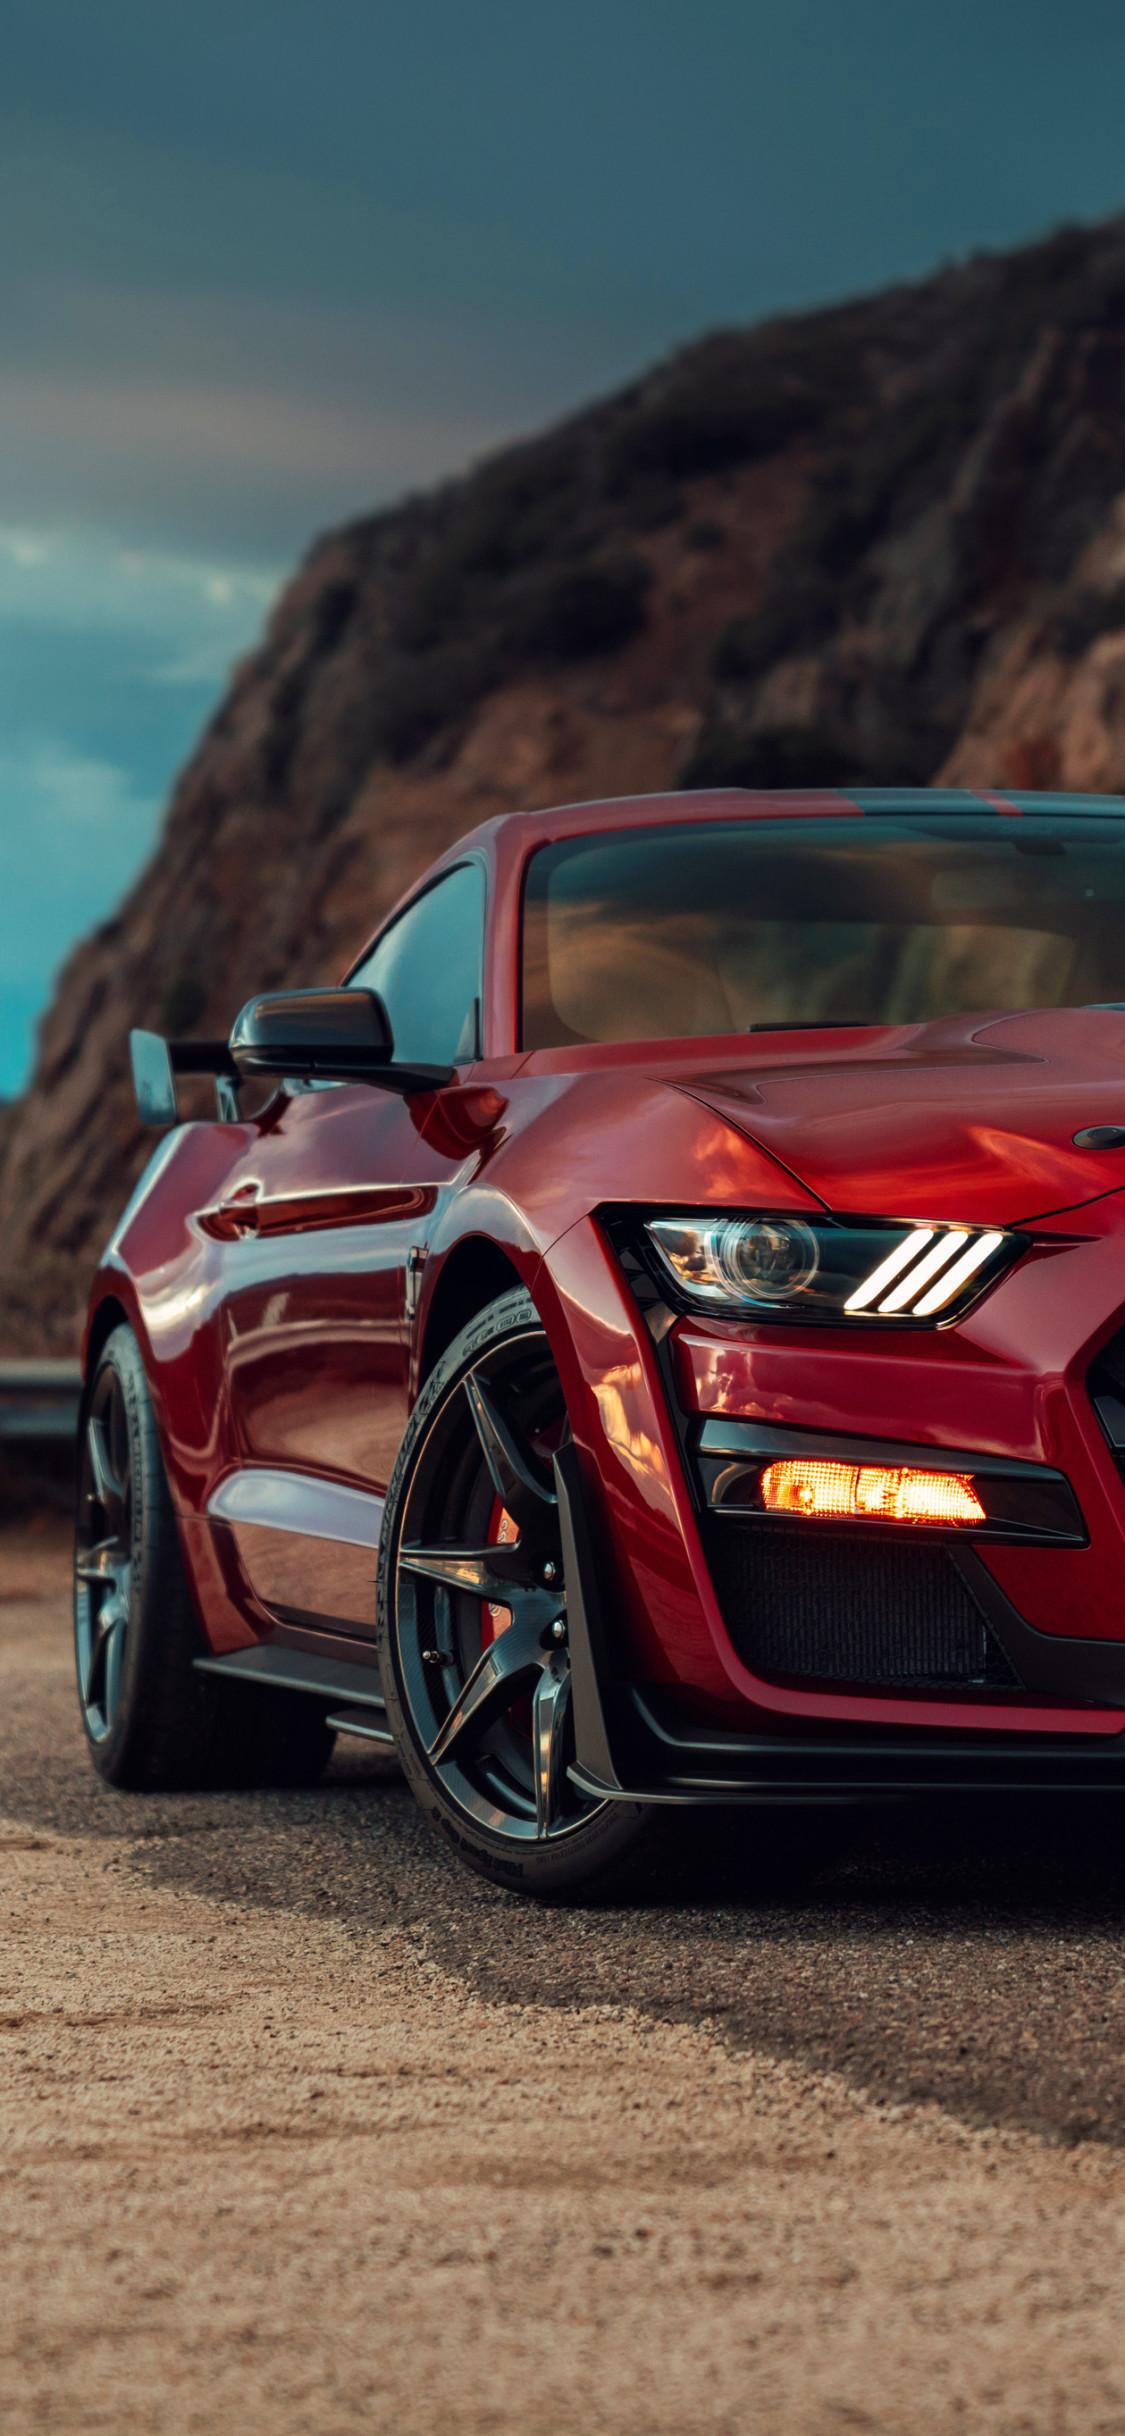 By nick pino, henry st leger 08 april 2021 what is 4k? Mustang Car 4k Iphone 2020 Wallpapers Wallpaper Cave